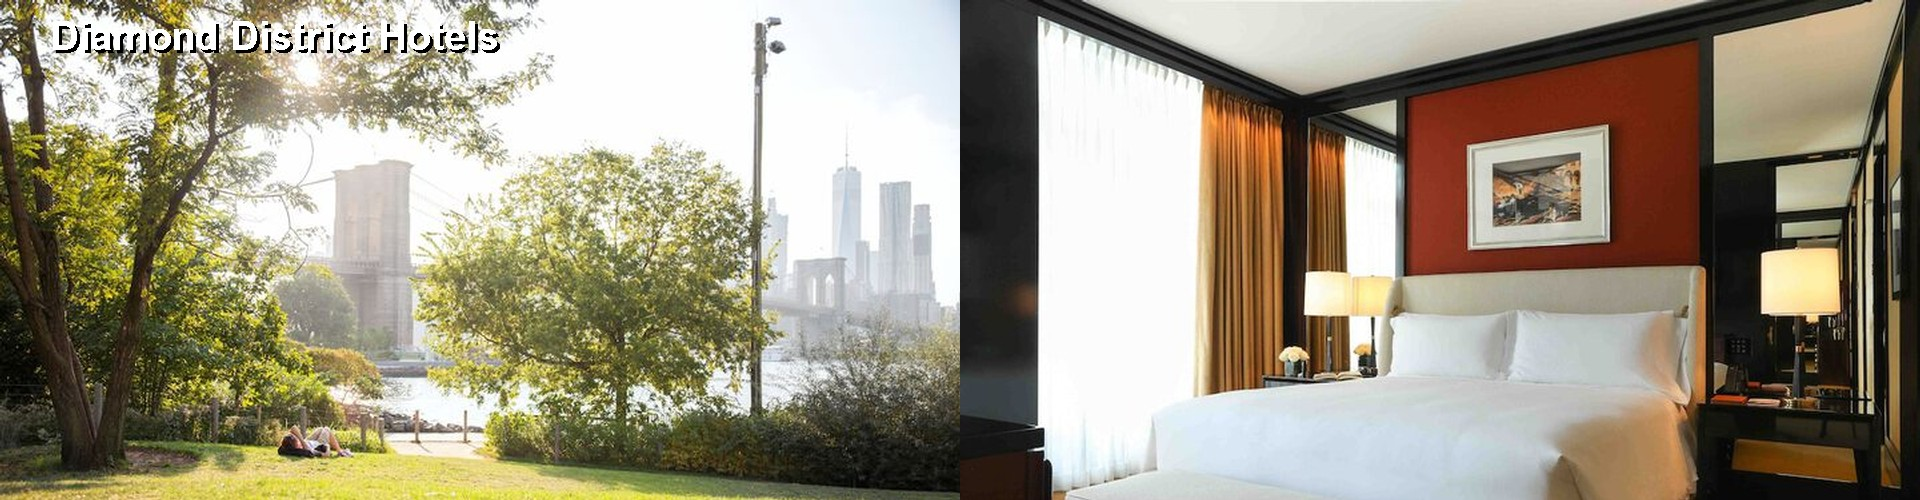 5 Best Hotels near Diamond District